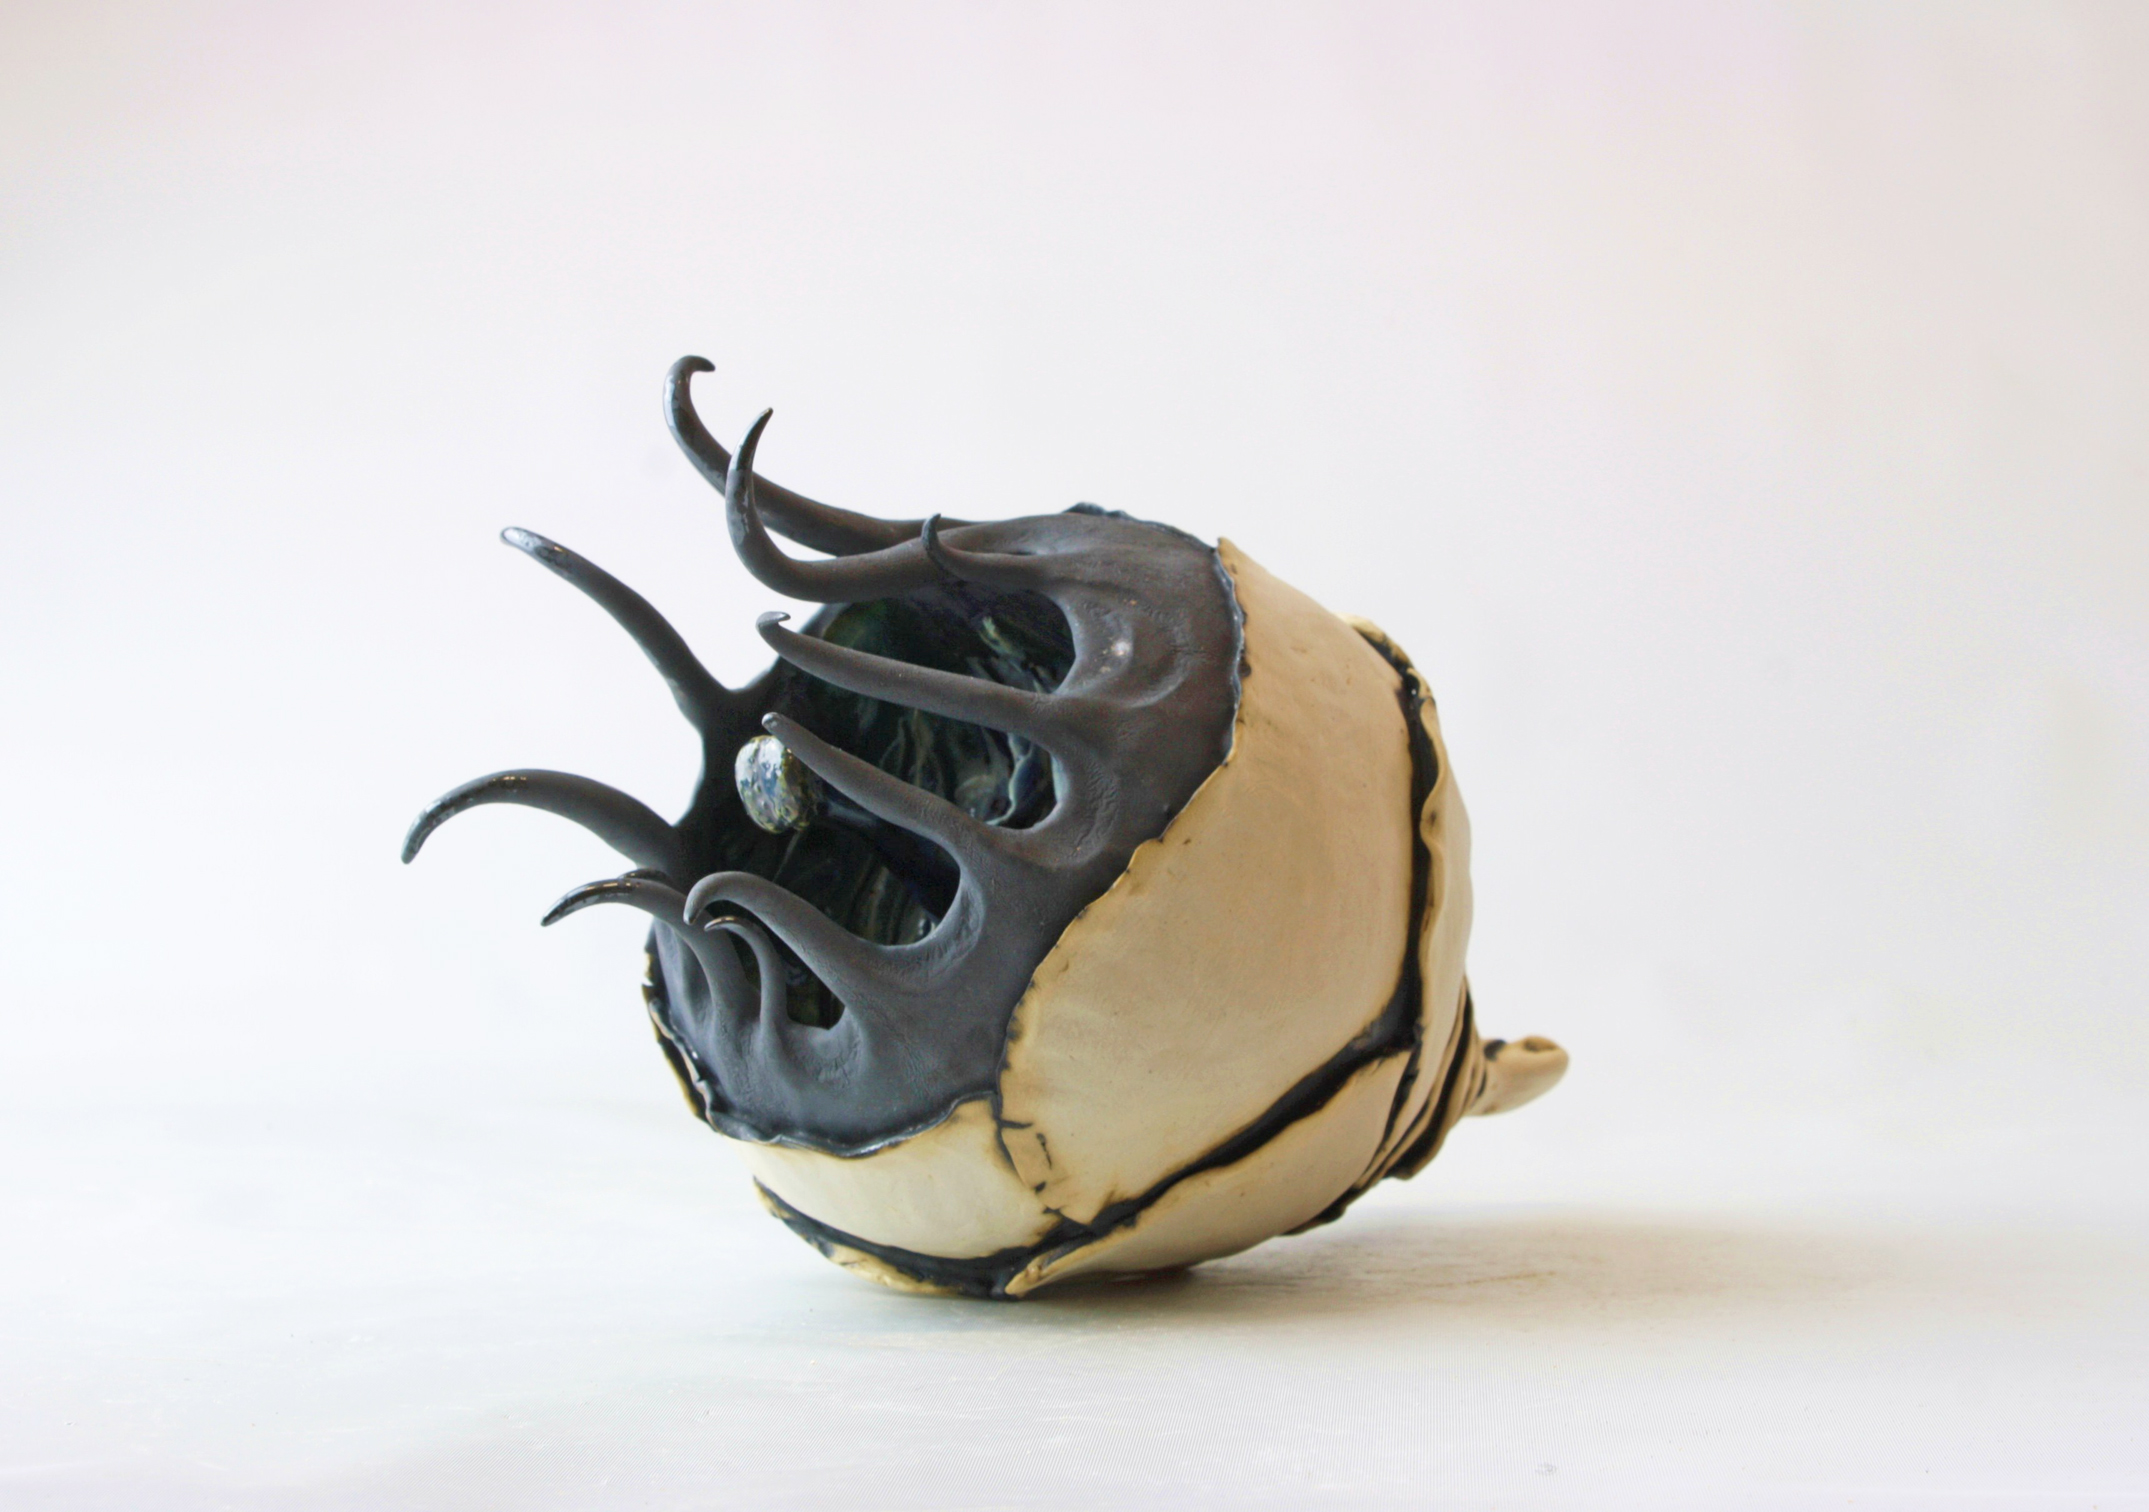 Querencia, 2015, Glazed stoneware ceramic, mother of pearl lustre